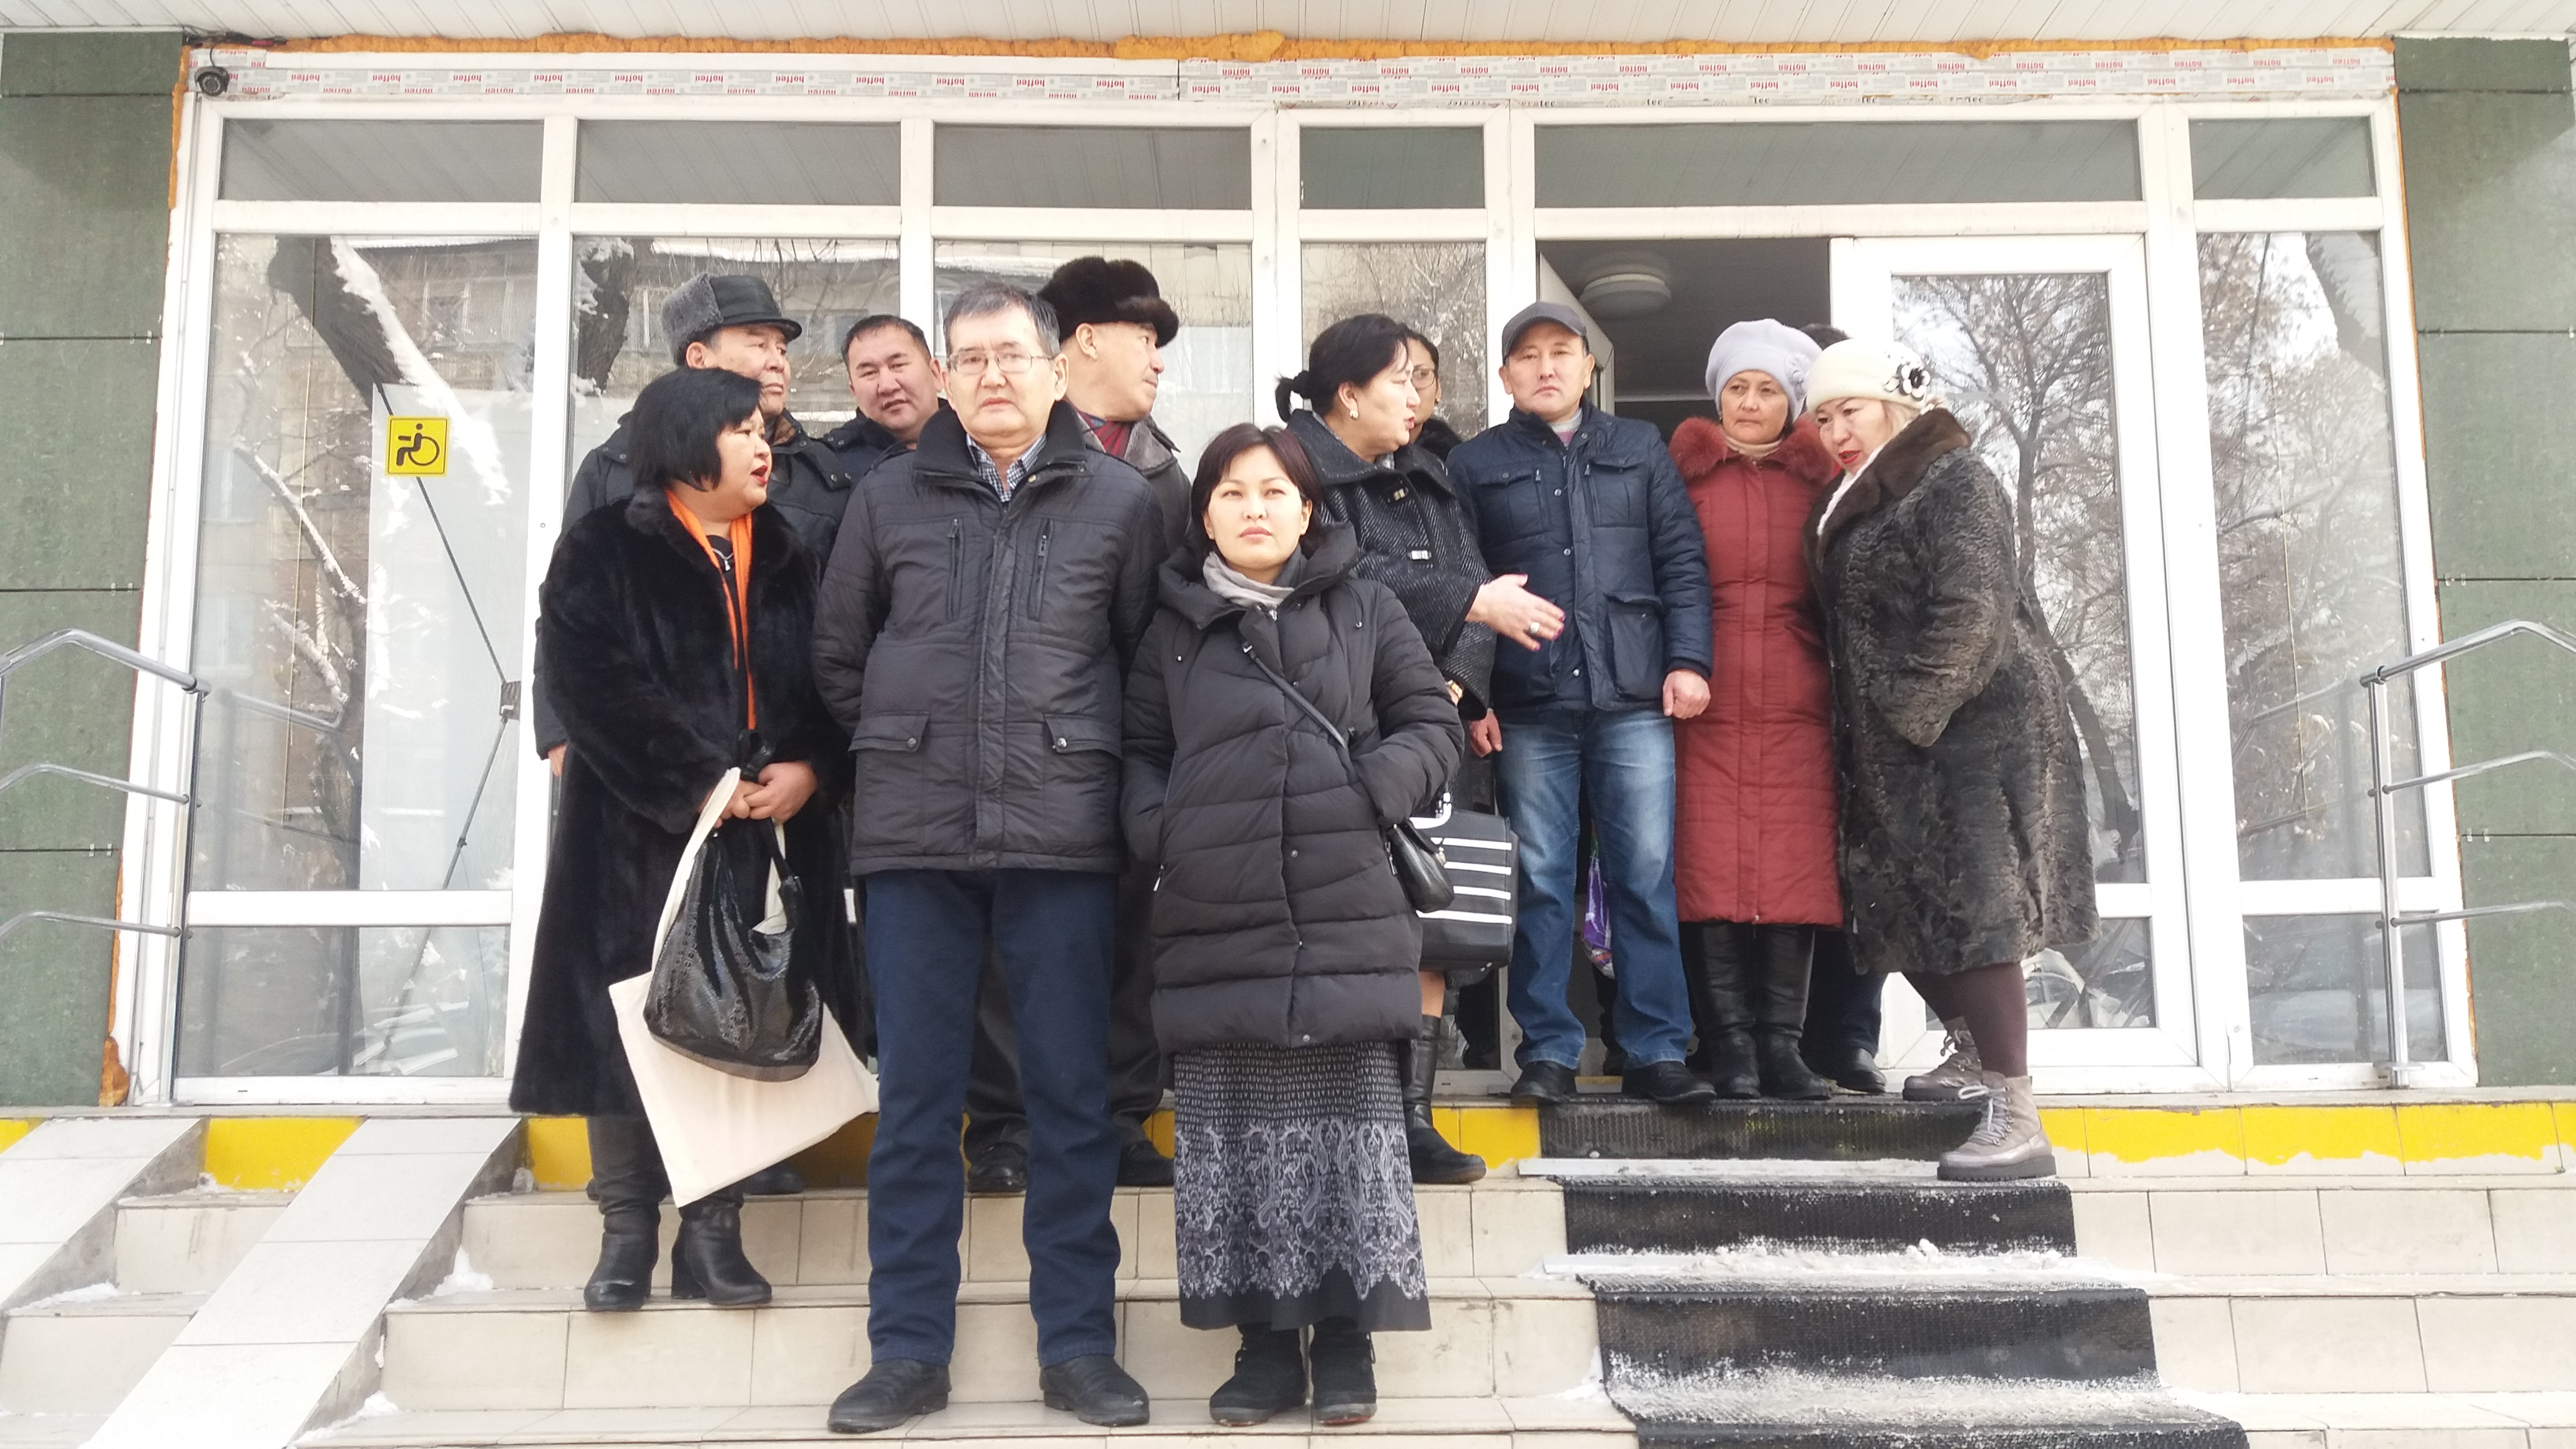 Supporters of Almat Zhumagulov and Kenzhebek Abishev outside an Almaty court